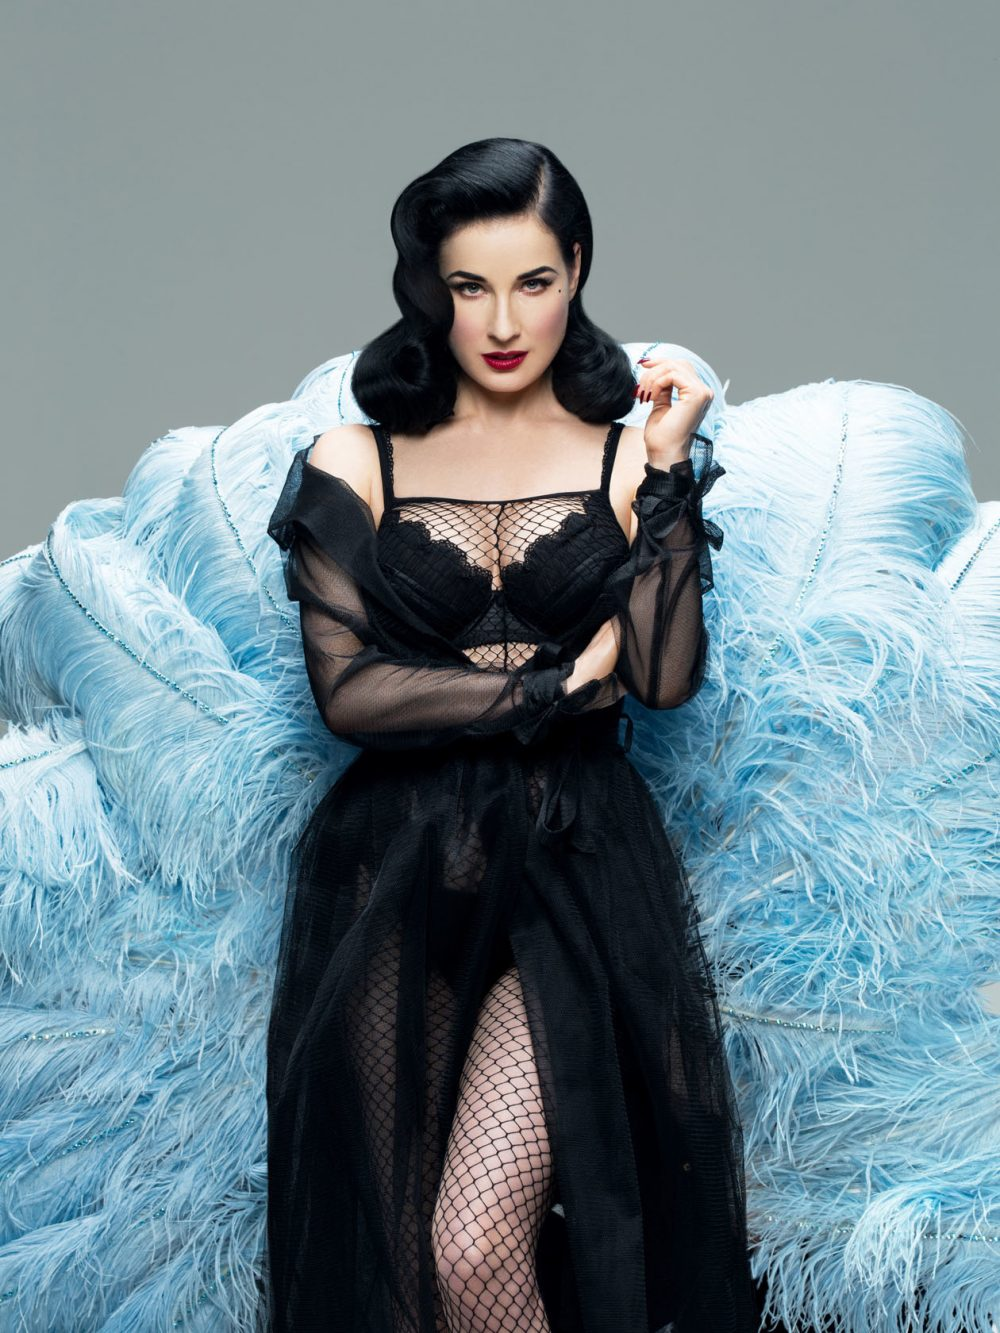 burlesque queen dita von teese shares her fitness beauty secrets page 4 of 4 women fitness. Black Bedroom Furniture Sets. Home Design Ideas